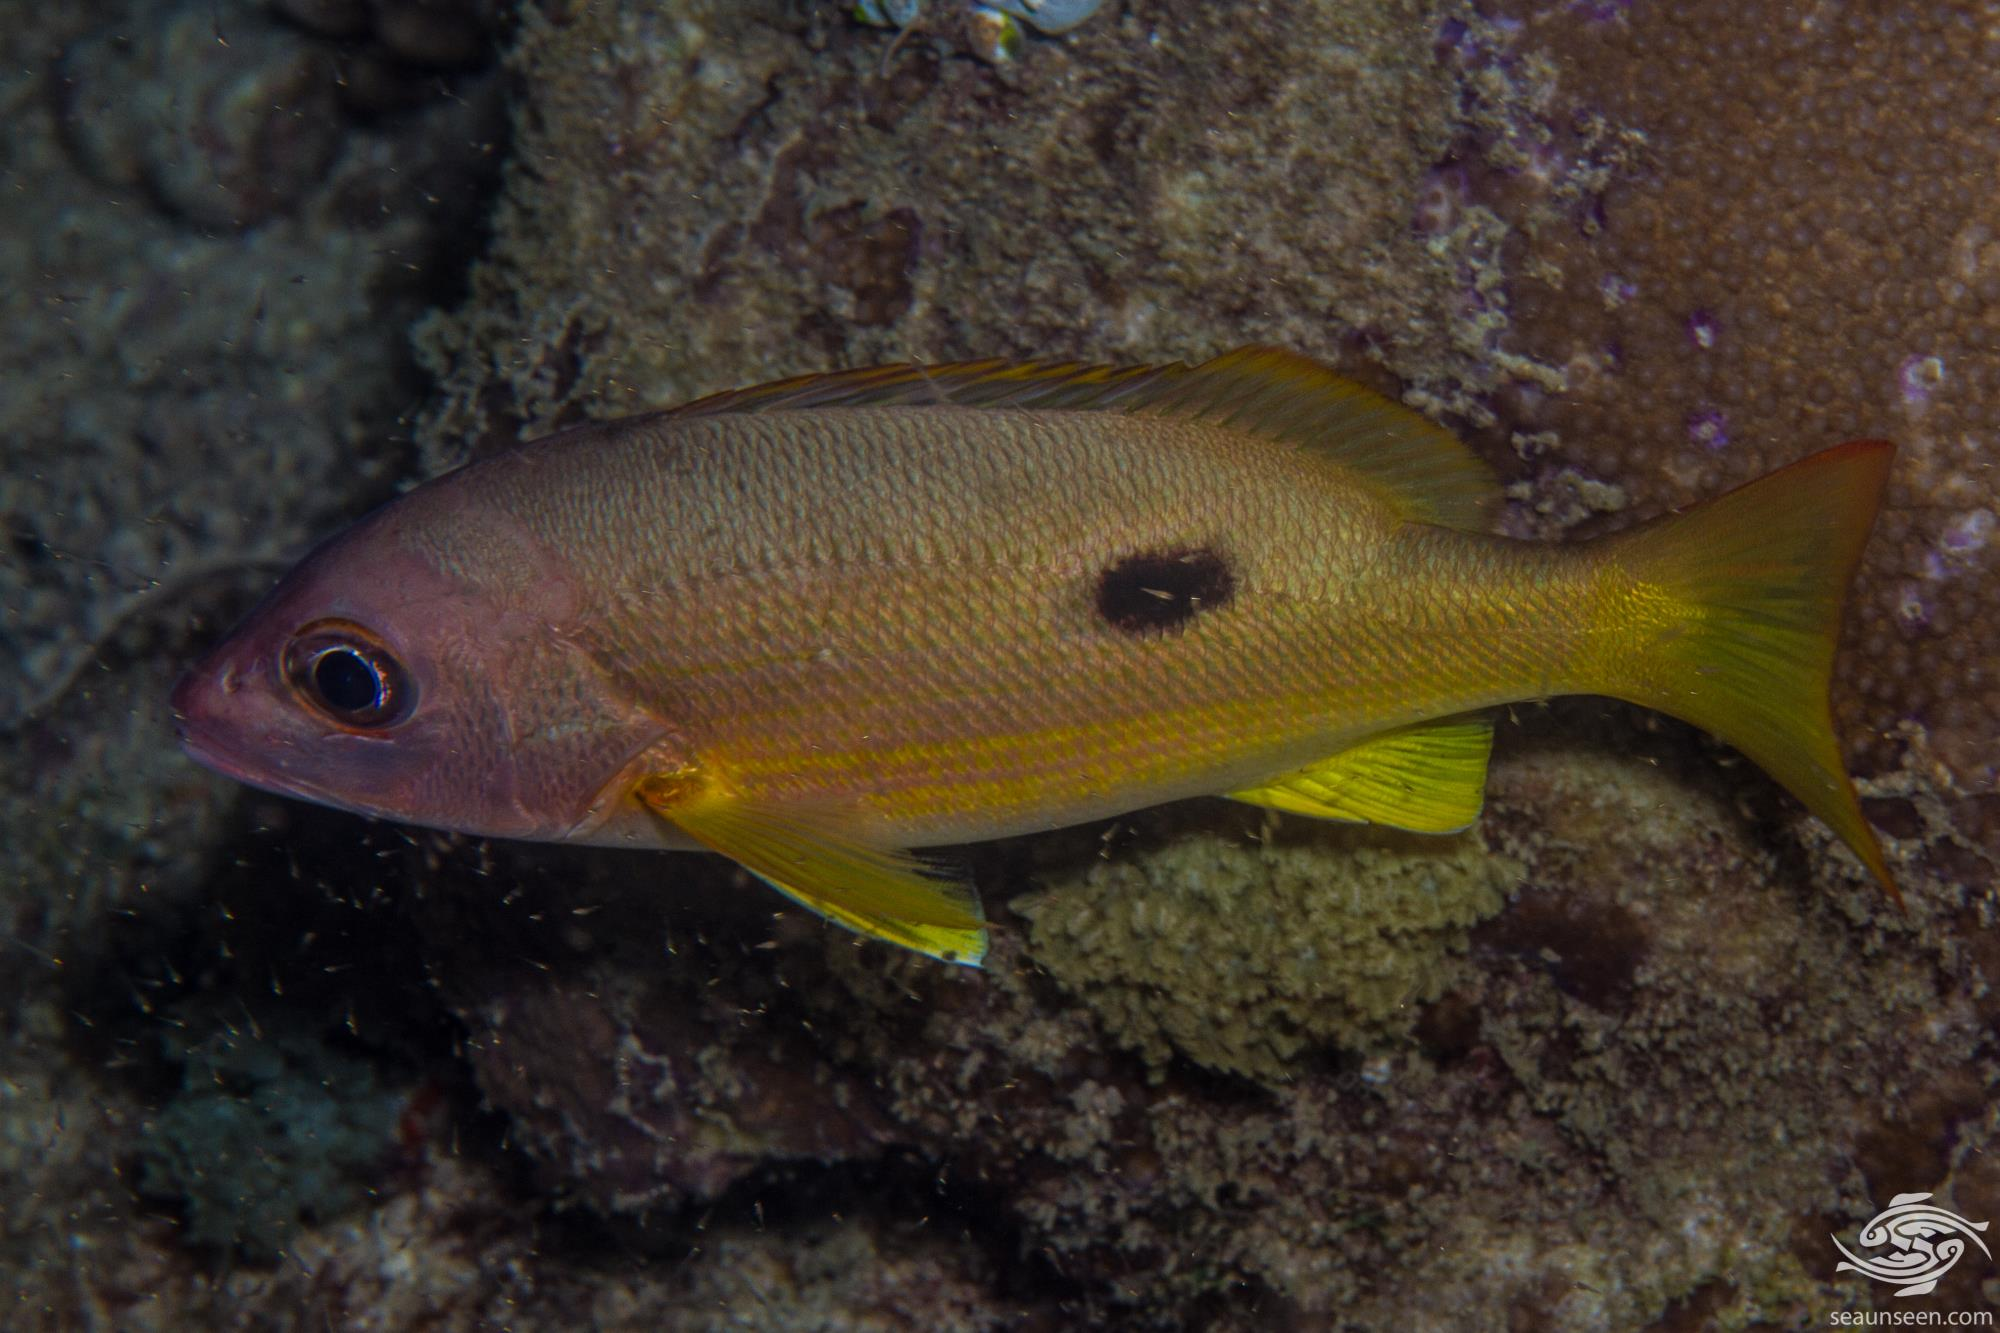 Dory Snapper (Lutjanus fulviflamma) is also known as the Blackspot Snapper